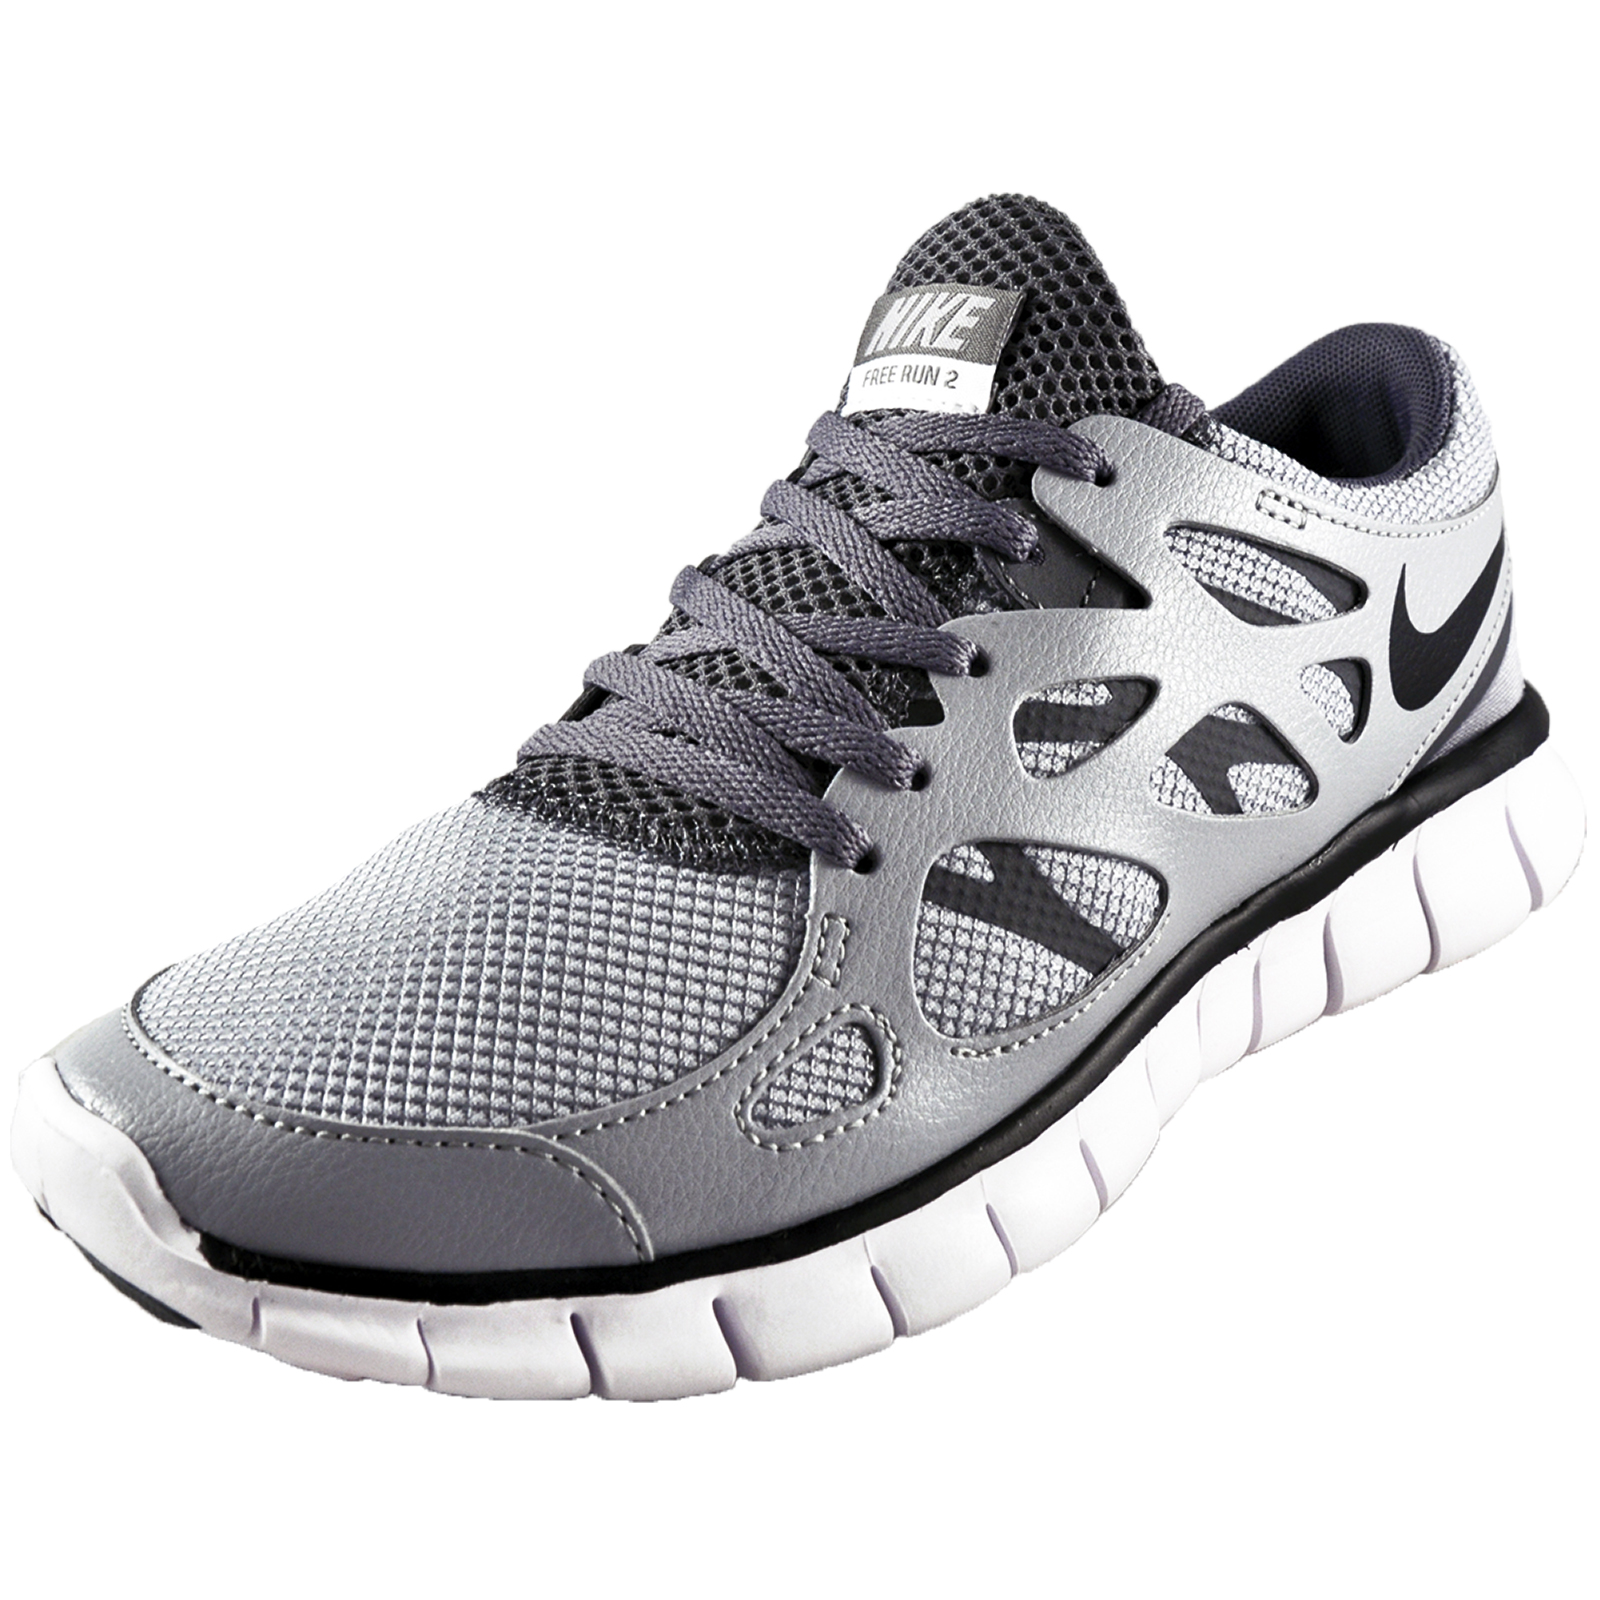 nike free run 2 trainers lt grey. Black Bedroom Furniture Sets. Home Design Ideas